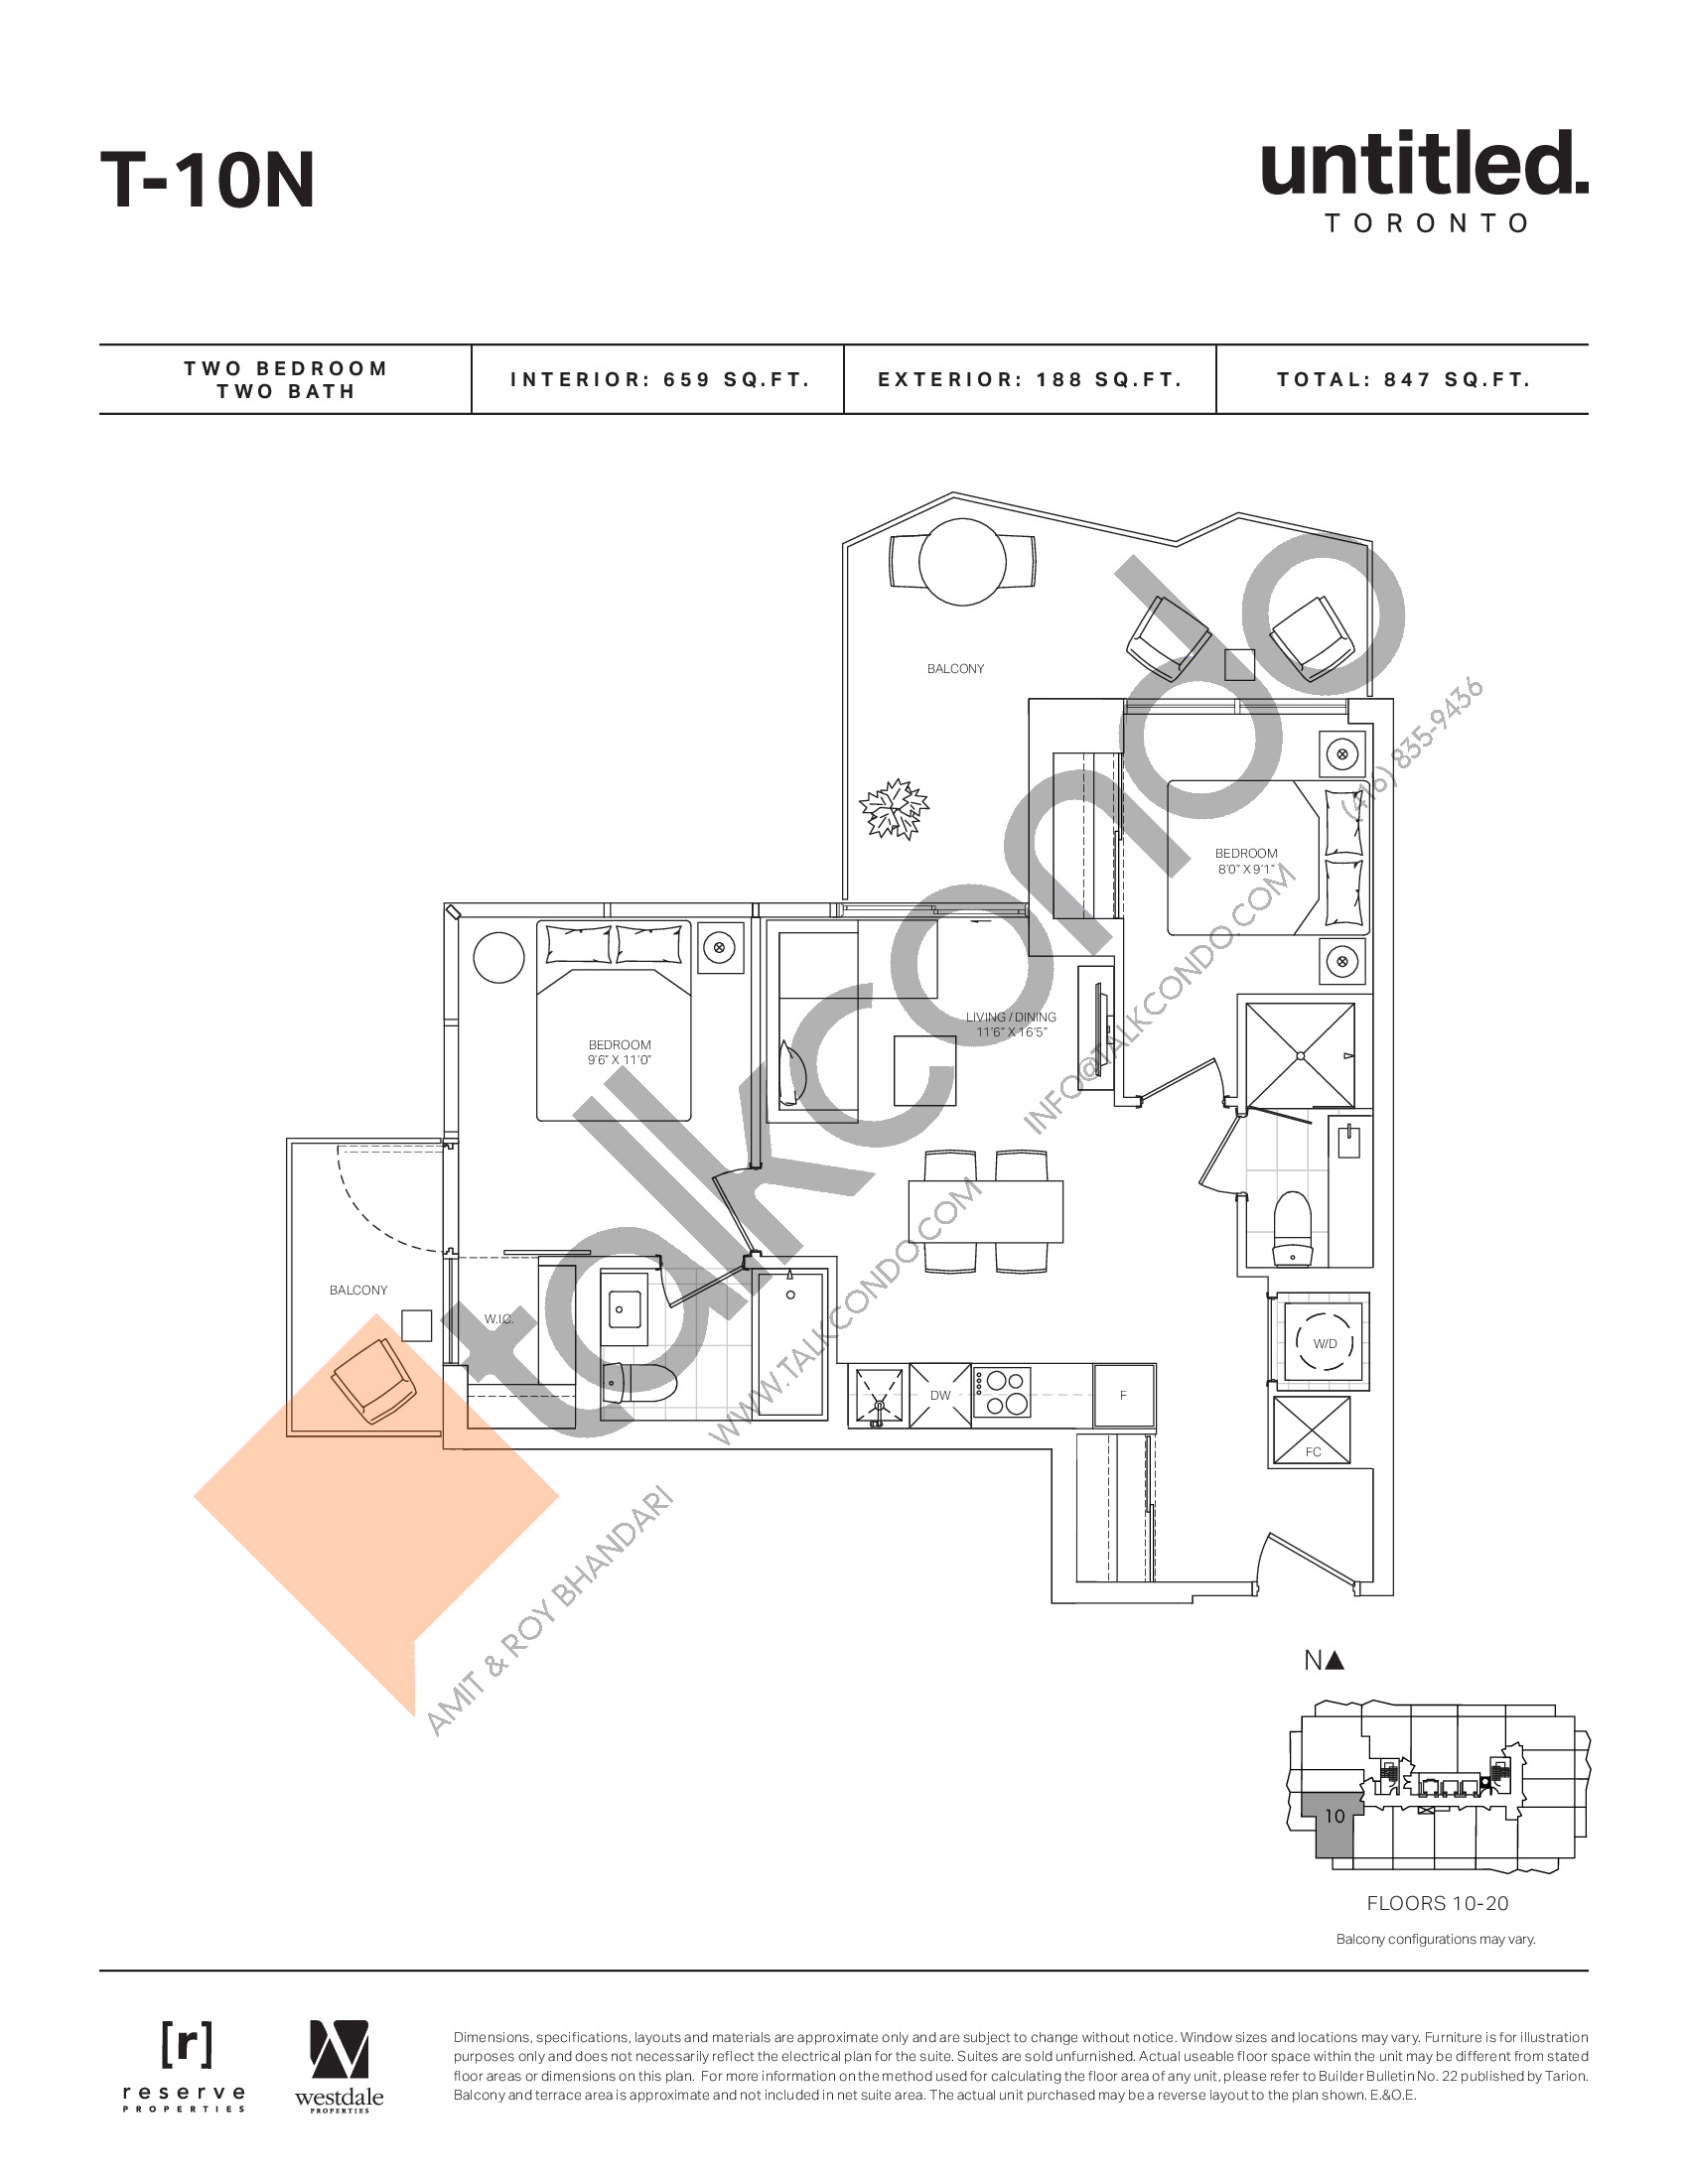 T-10N Floor Plan at Untitled North Tower Condos - 659 sq.ft